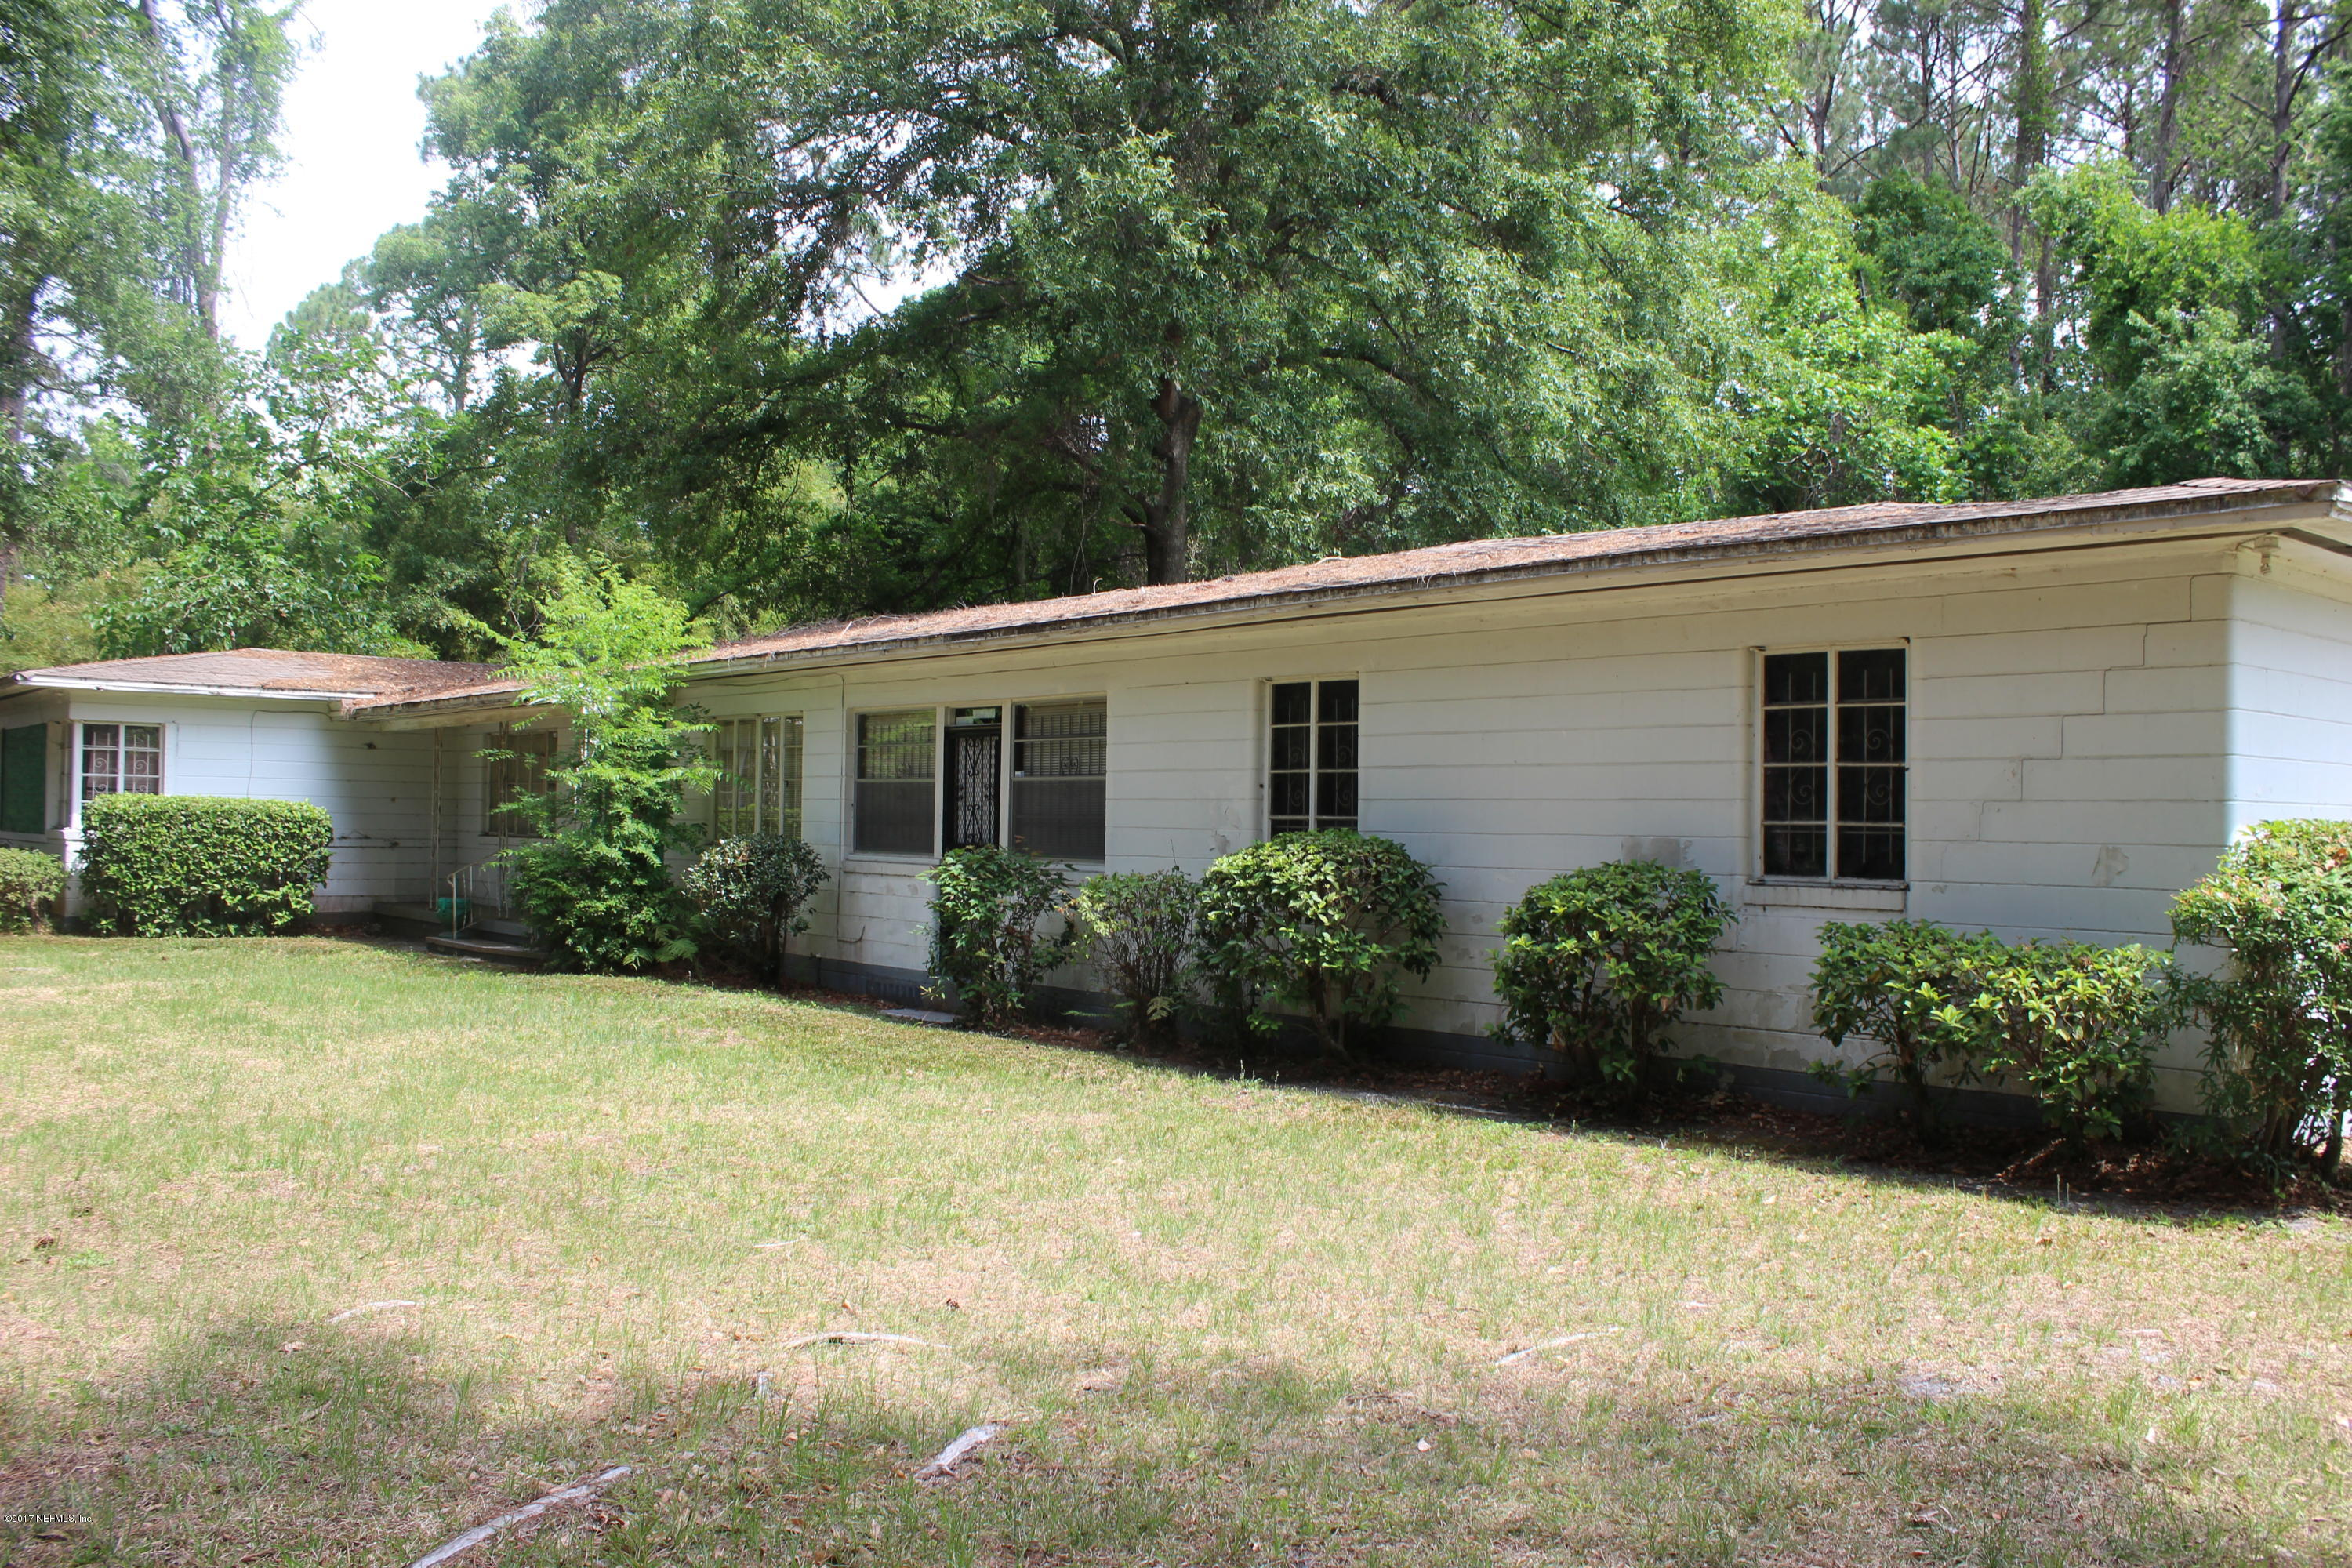 5713 MONCRIEF, JACKSONVILLE, FLORIDA 32209, 3 Bedrooms Bedrooms, ,2 BathroomsBathrooms,Residential - single family,For sale,MONCRIEF,880473